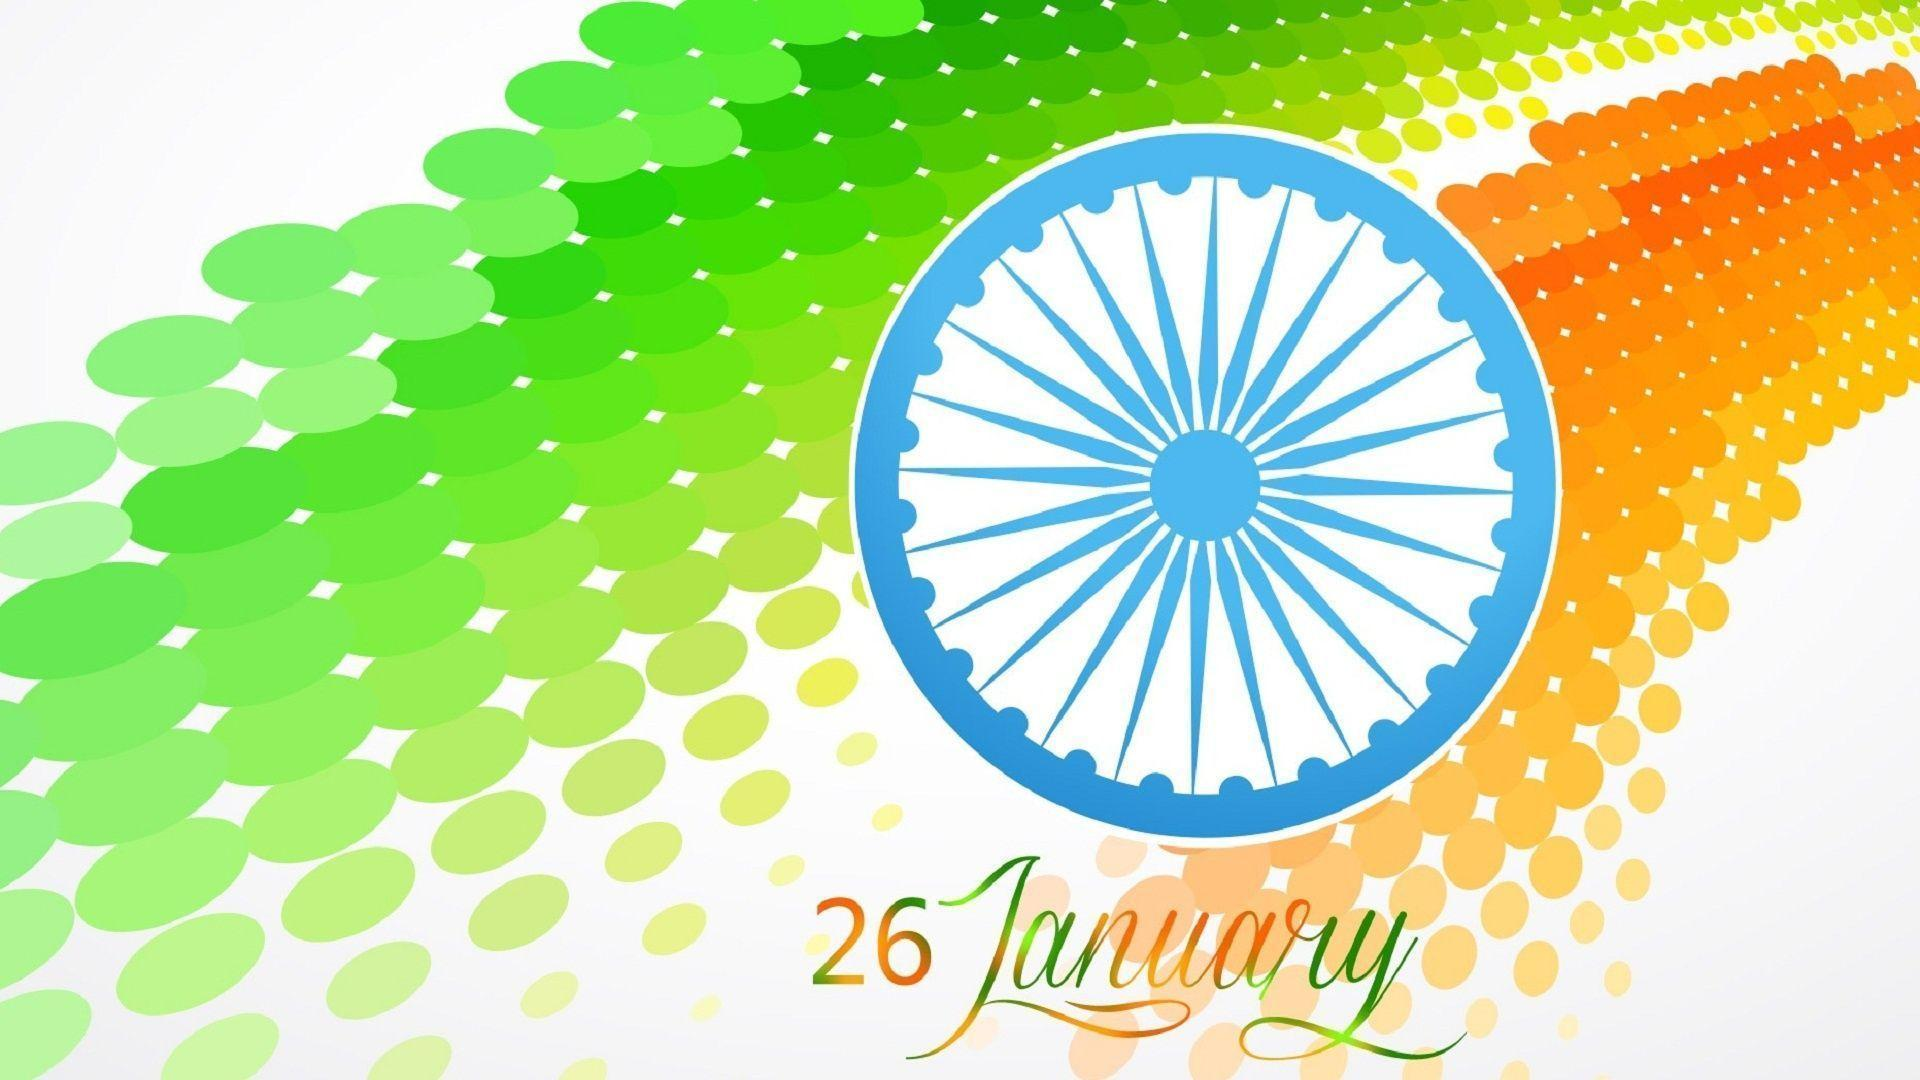 Republic Day National Flag Image Wall Papers HD 1080p Free